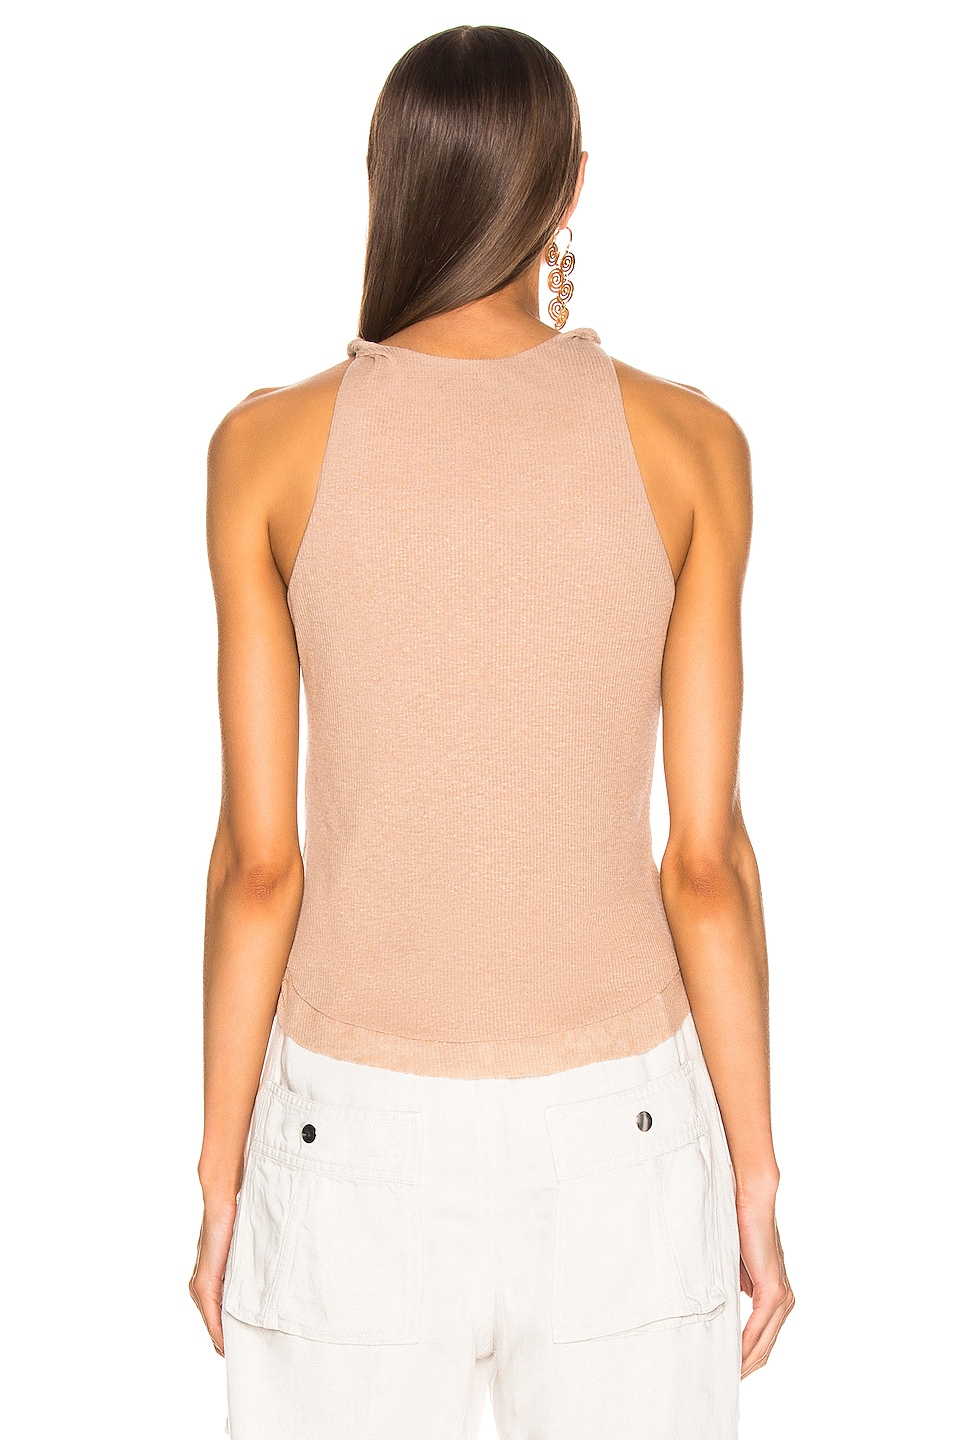 Image 3 of The Range Shadow Linen Rib Twist Tank Top in Sand